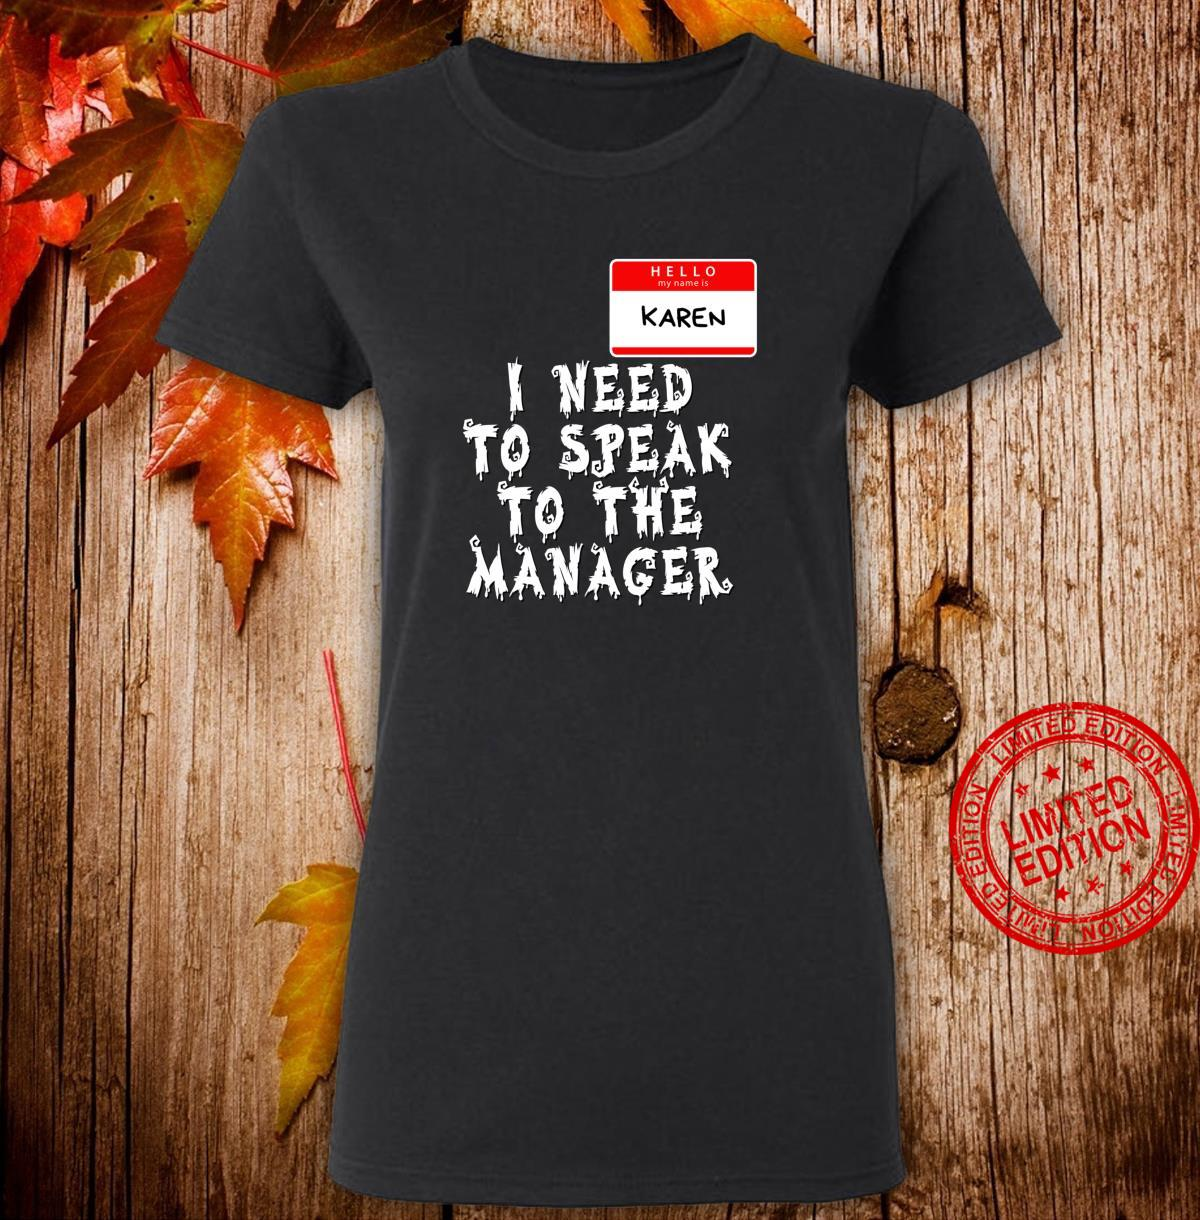 My name is Karen. Need to Speak to Manager Halloween Costume Shirt ladies tee